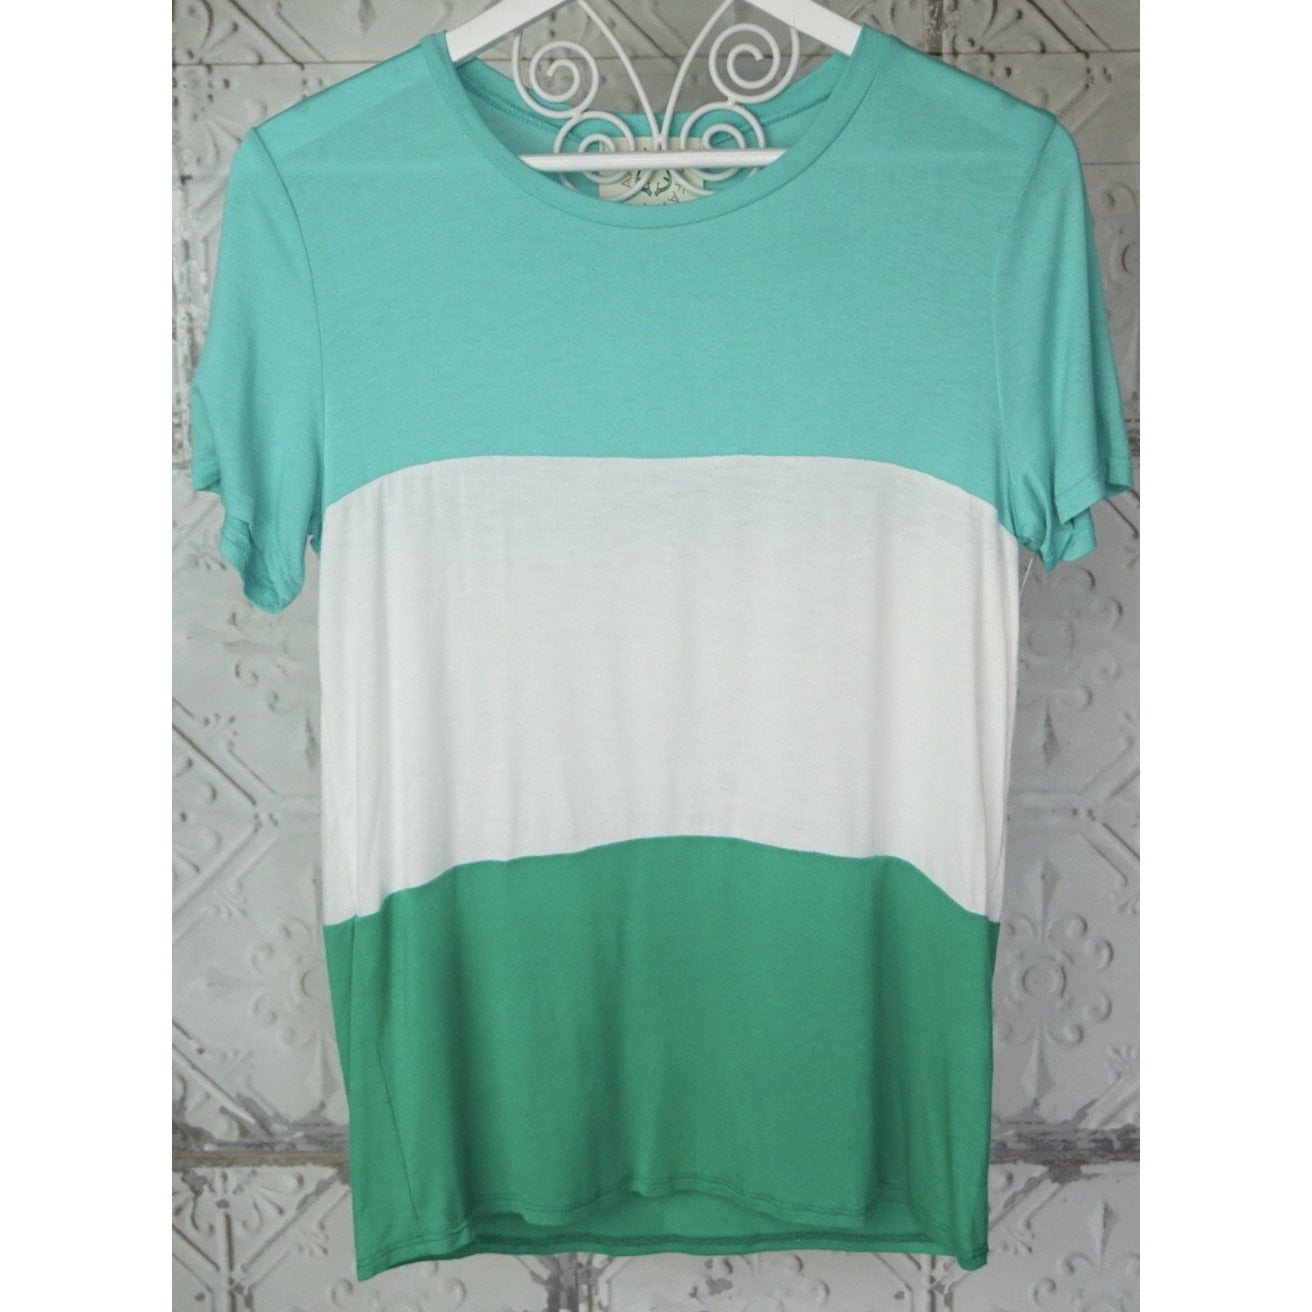 Dre Day Tee- Green